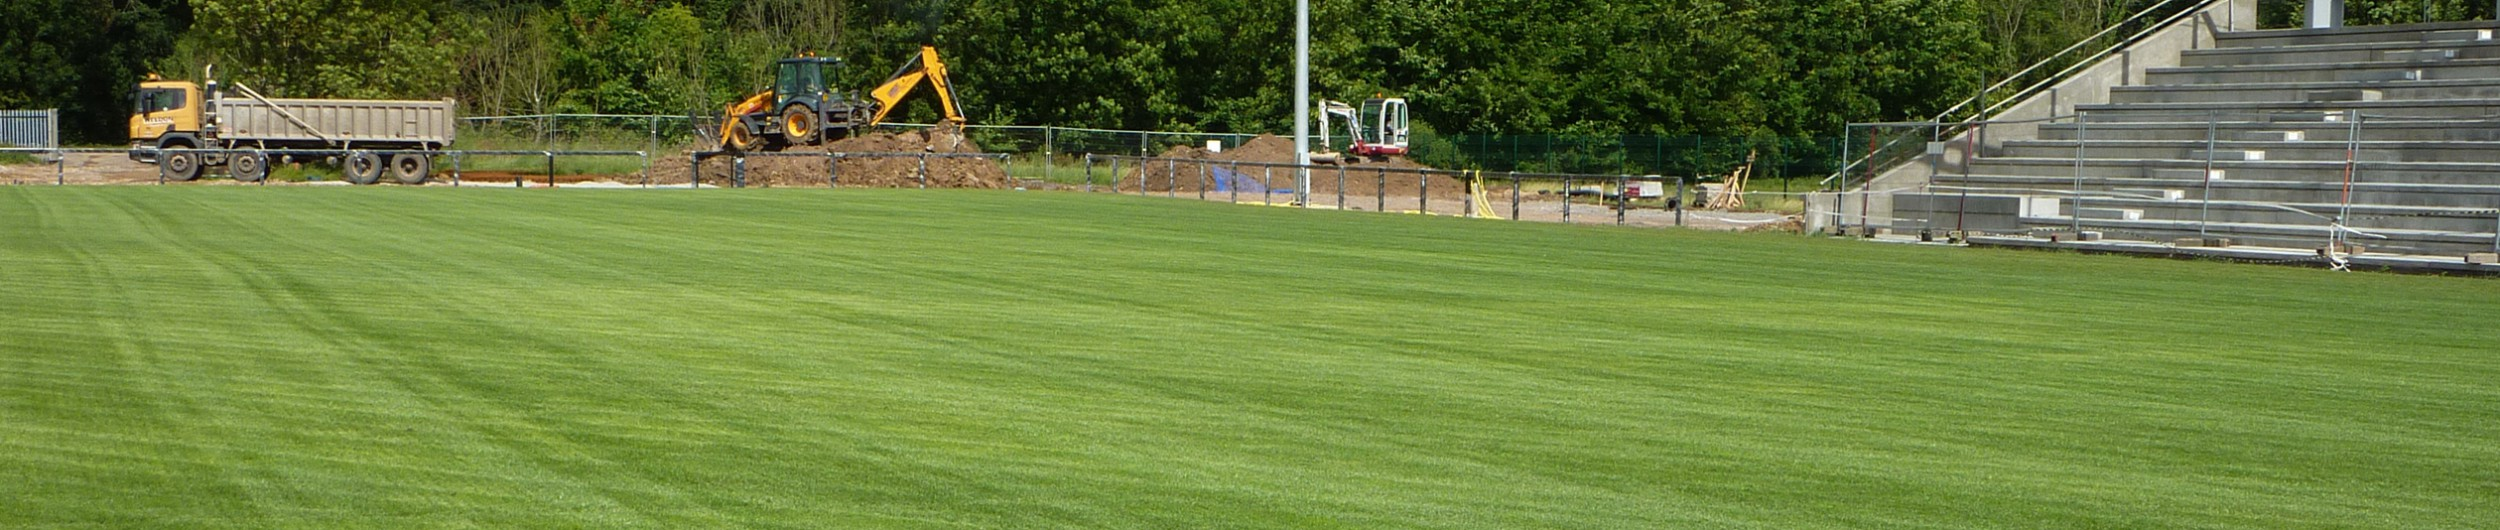 Construction and maintenance of Cricket Pitch.